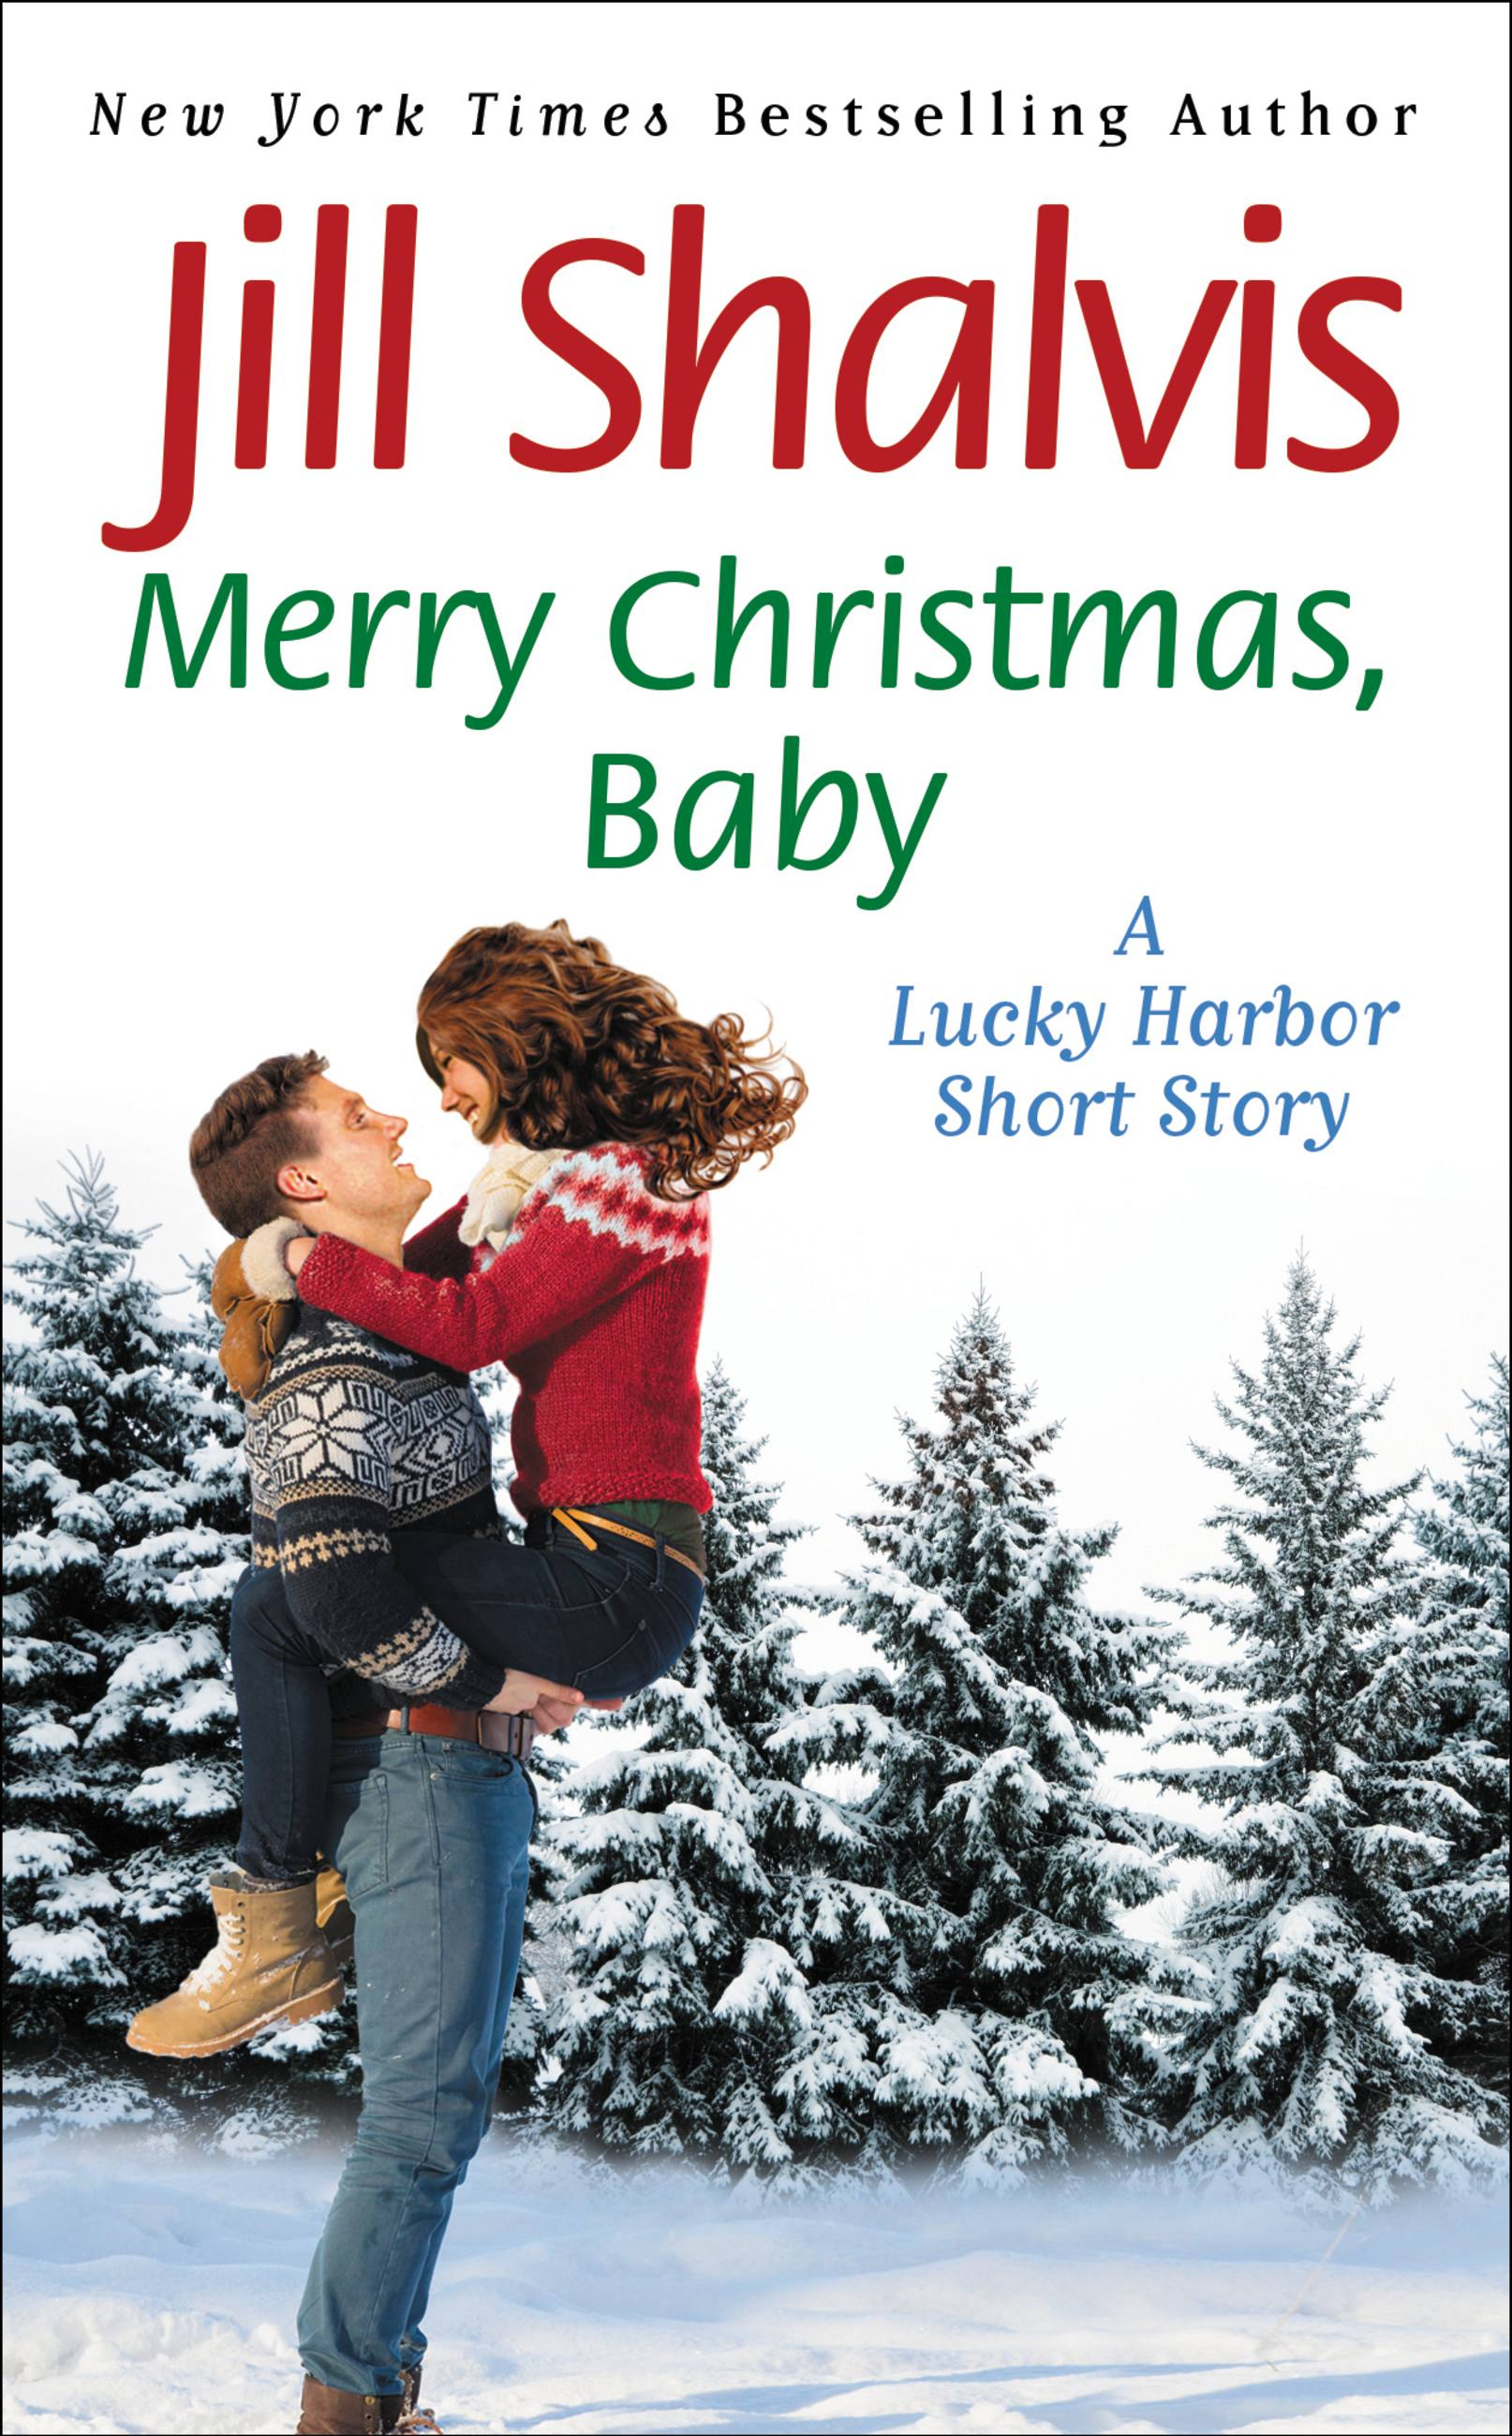 Merry Christmas, Baby A Lucky Harbor short story